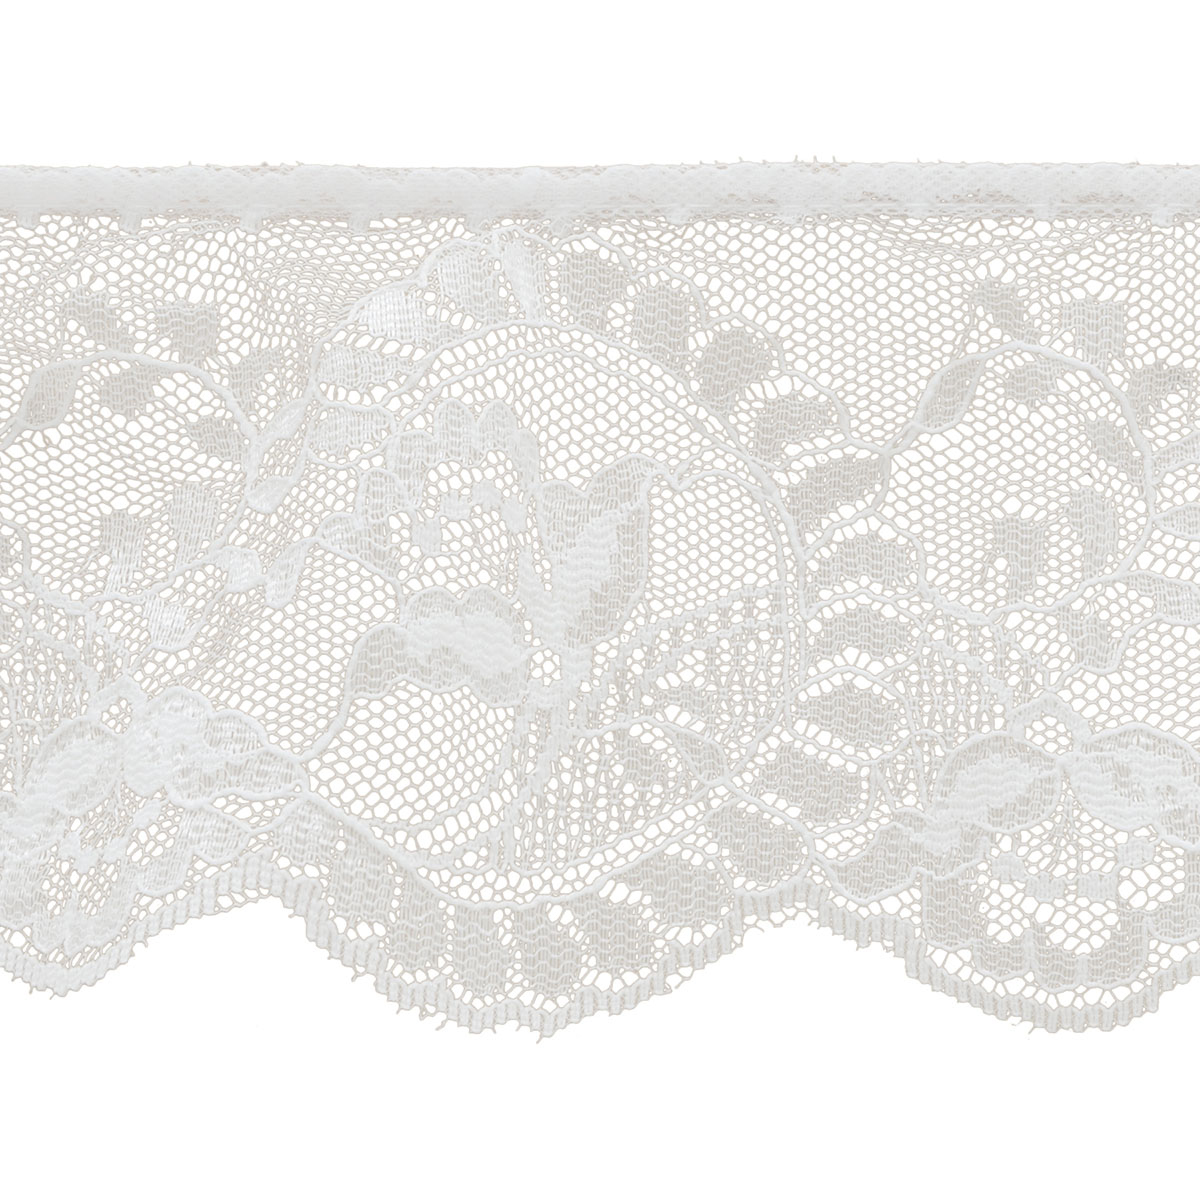 "Flower Cameo Lace 3 - 7/8"" X 12yd - White"